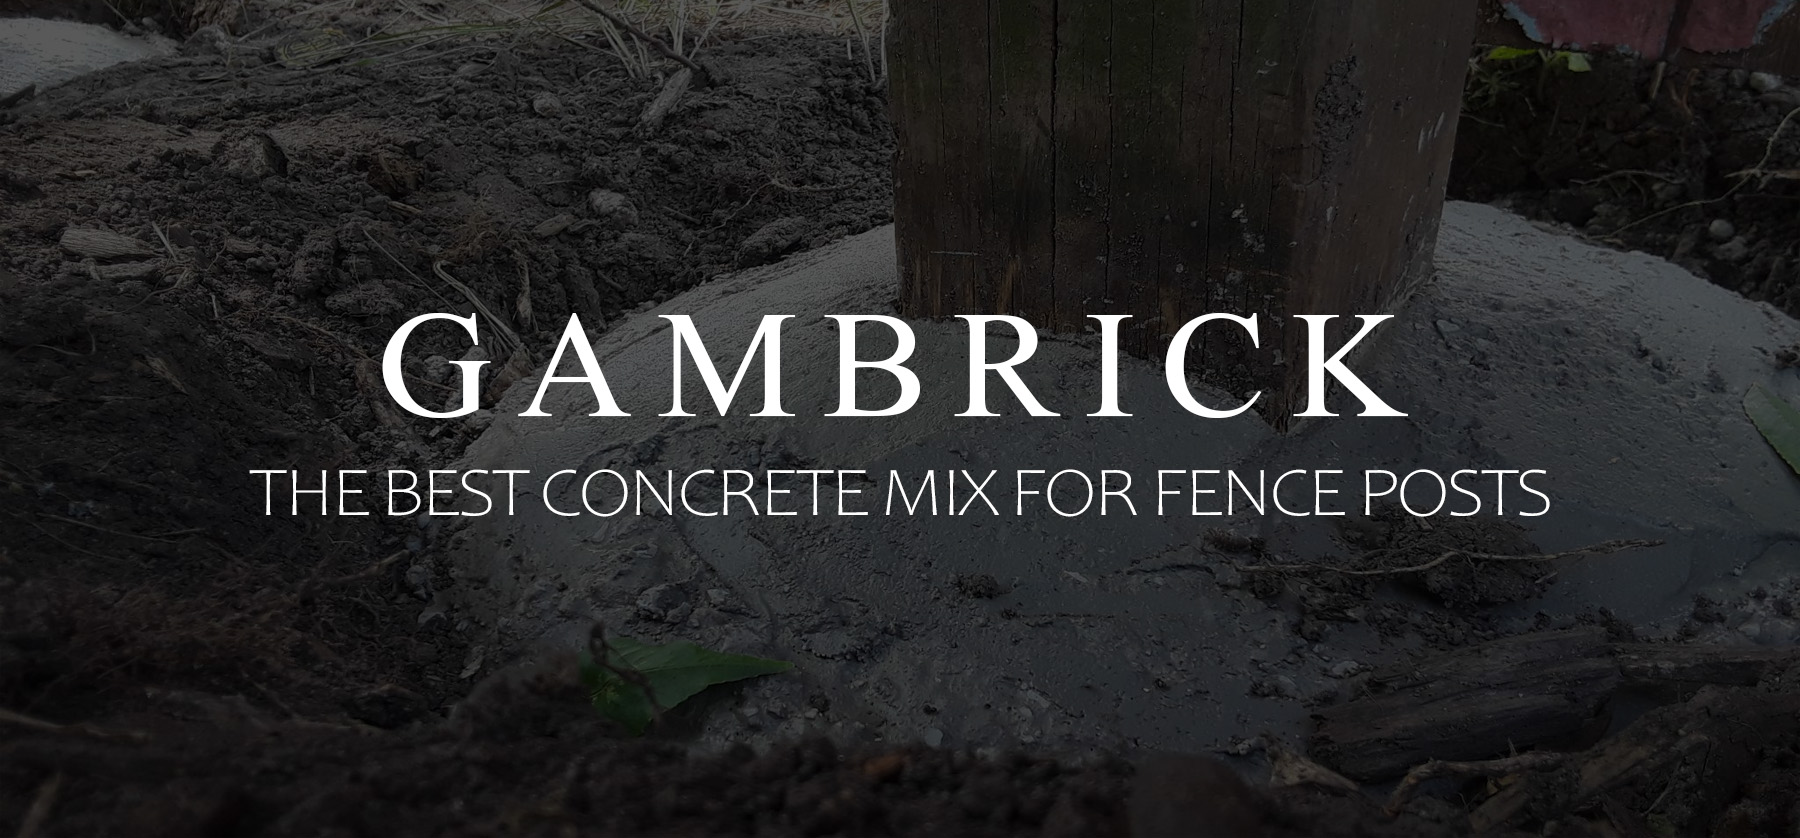 the best concrete mix for fence posts banner 1